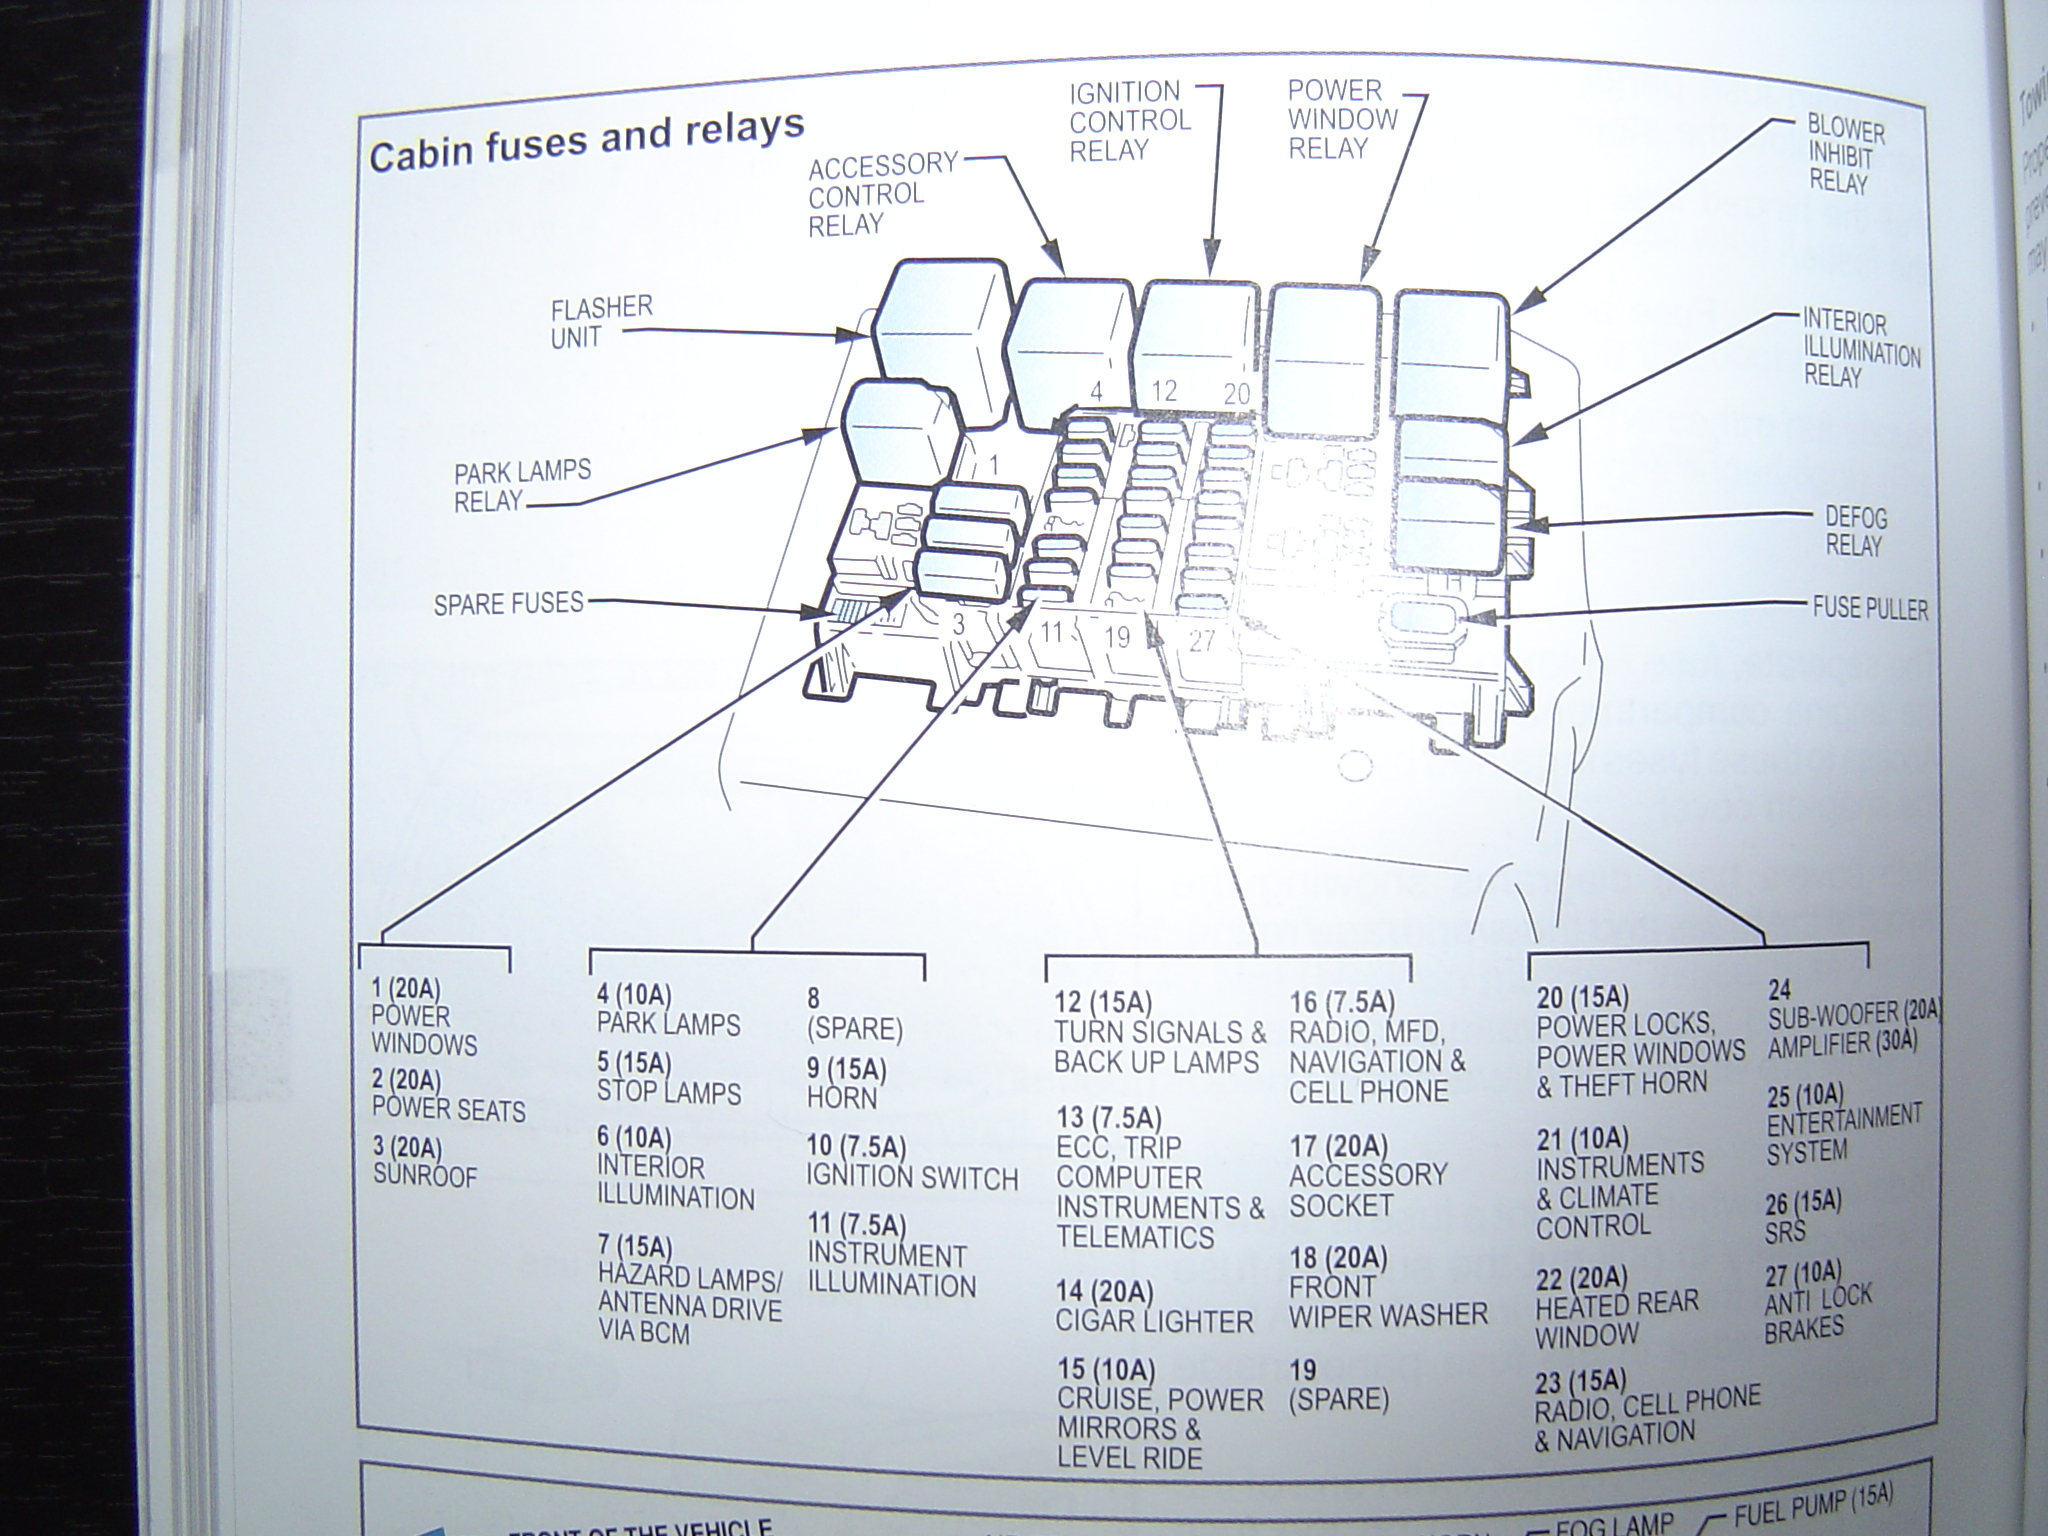 VY_CABIN_FUSEBOX ba fuse box fuse electrical circuit \u2022 wiring diagrams j squared co au falcon fuse box diagram at readyjetset.co